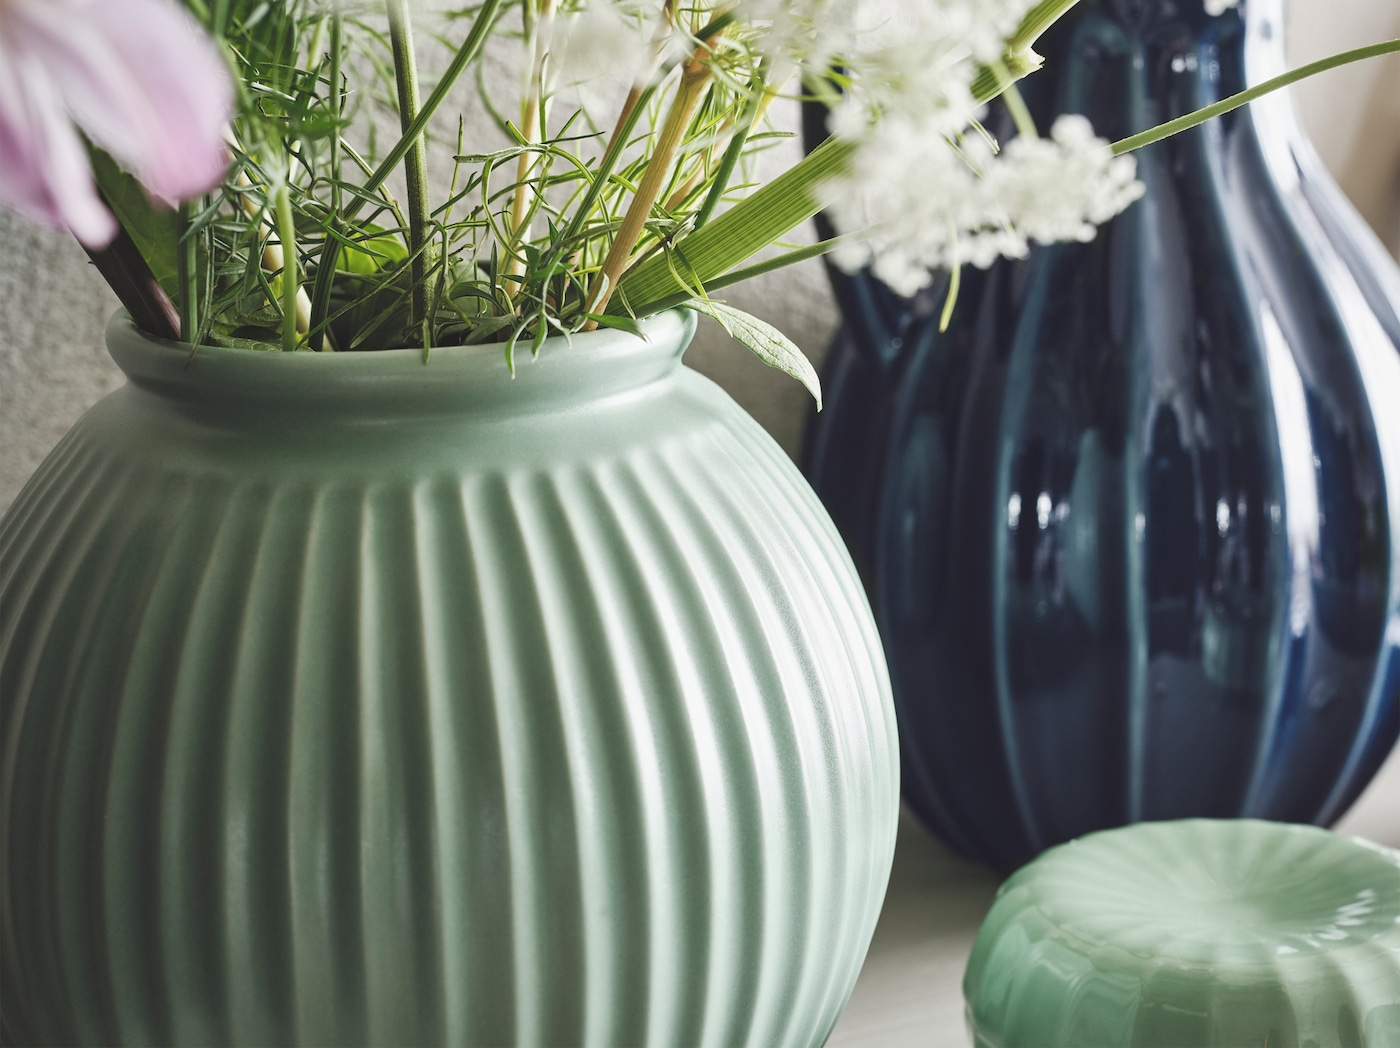 A close-up on a light green VANLIGEN vase with fresh spring flowers and a blue VANLIGEN vase/jug in the background.